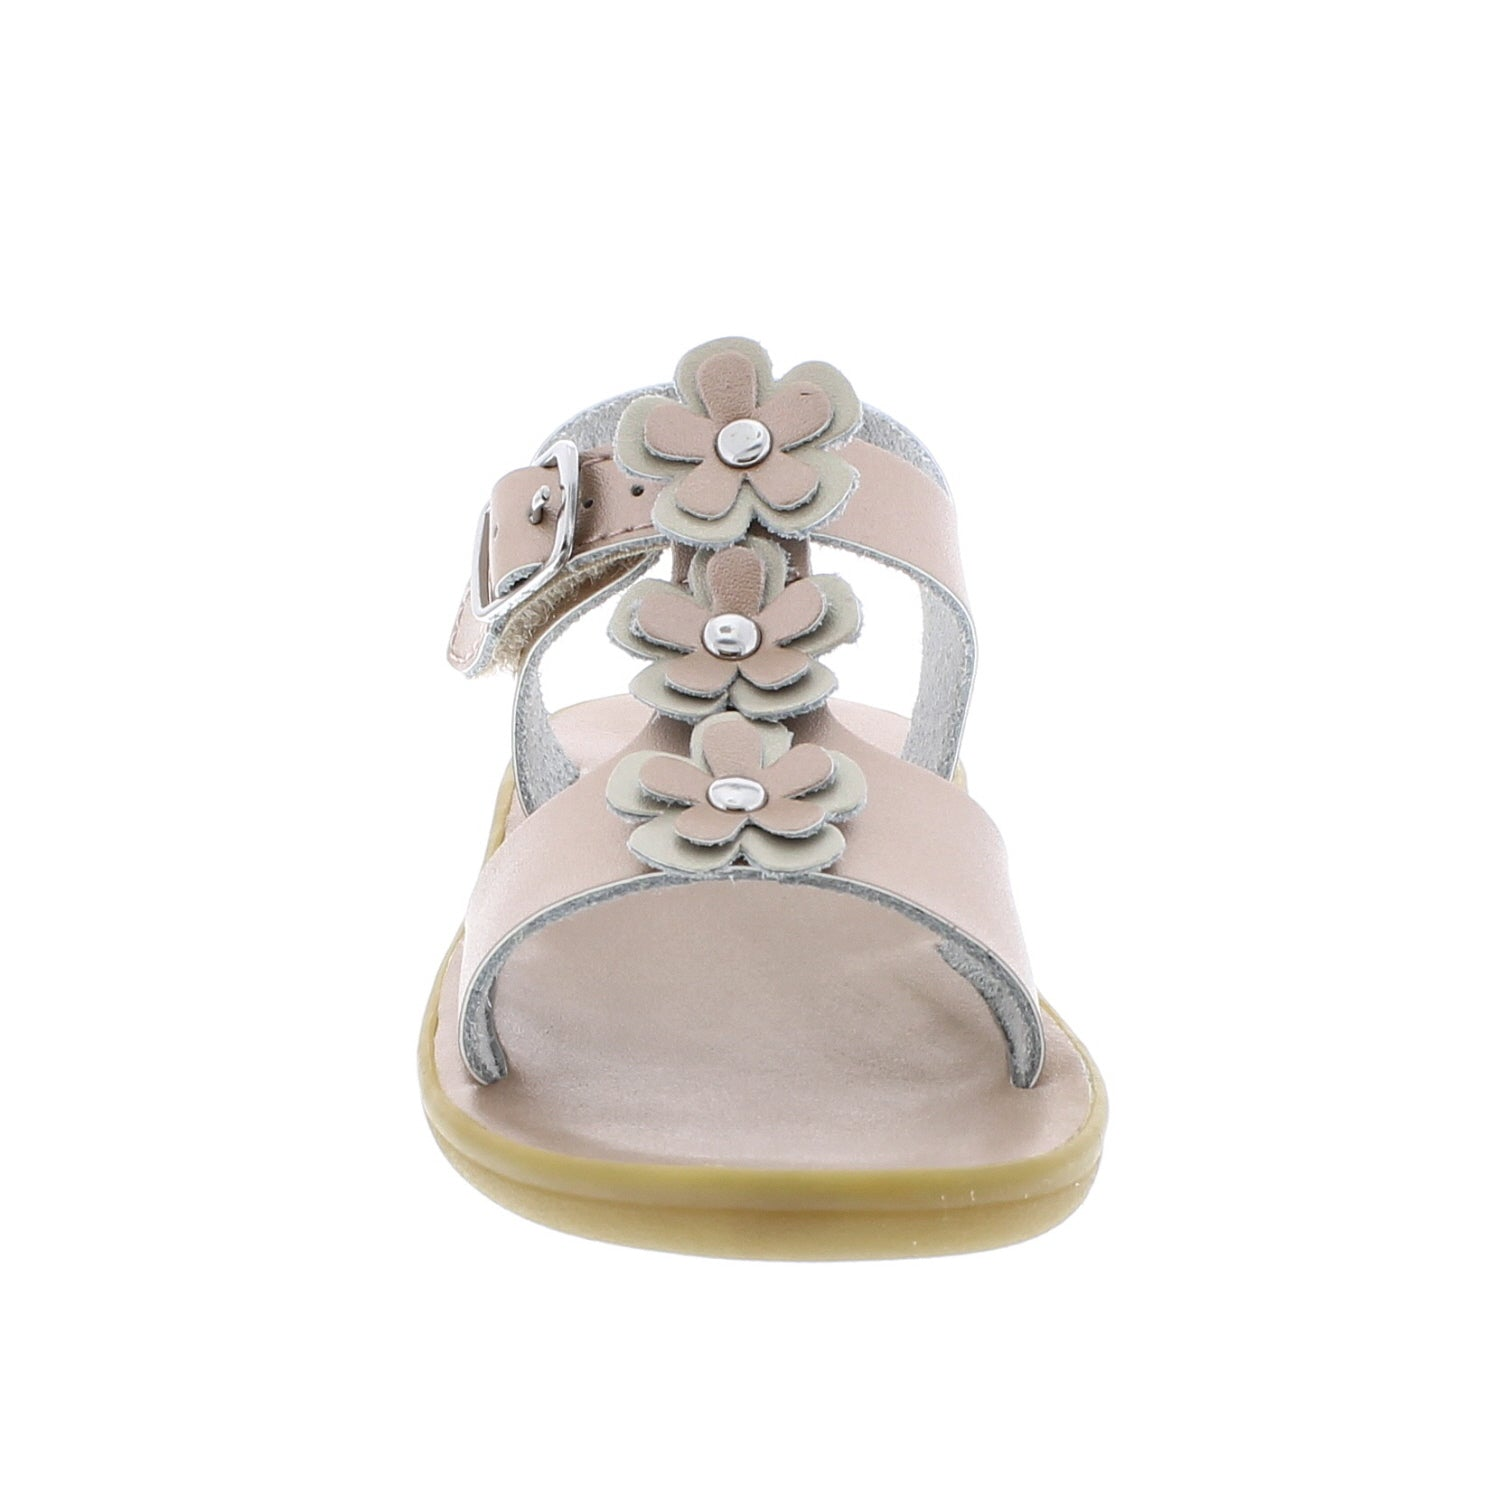 Footmates Jasmine Sandal - Rose Gold